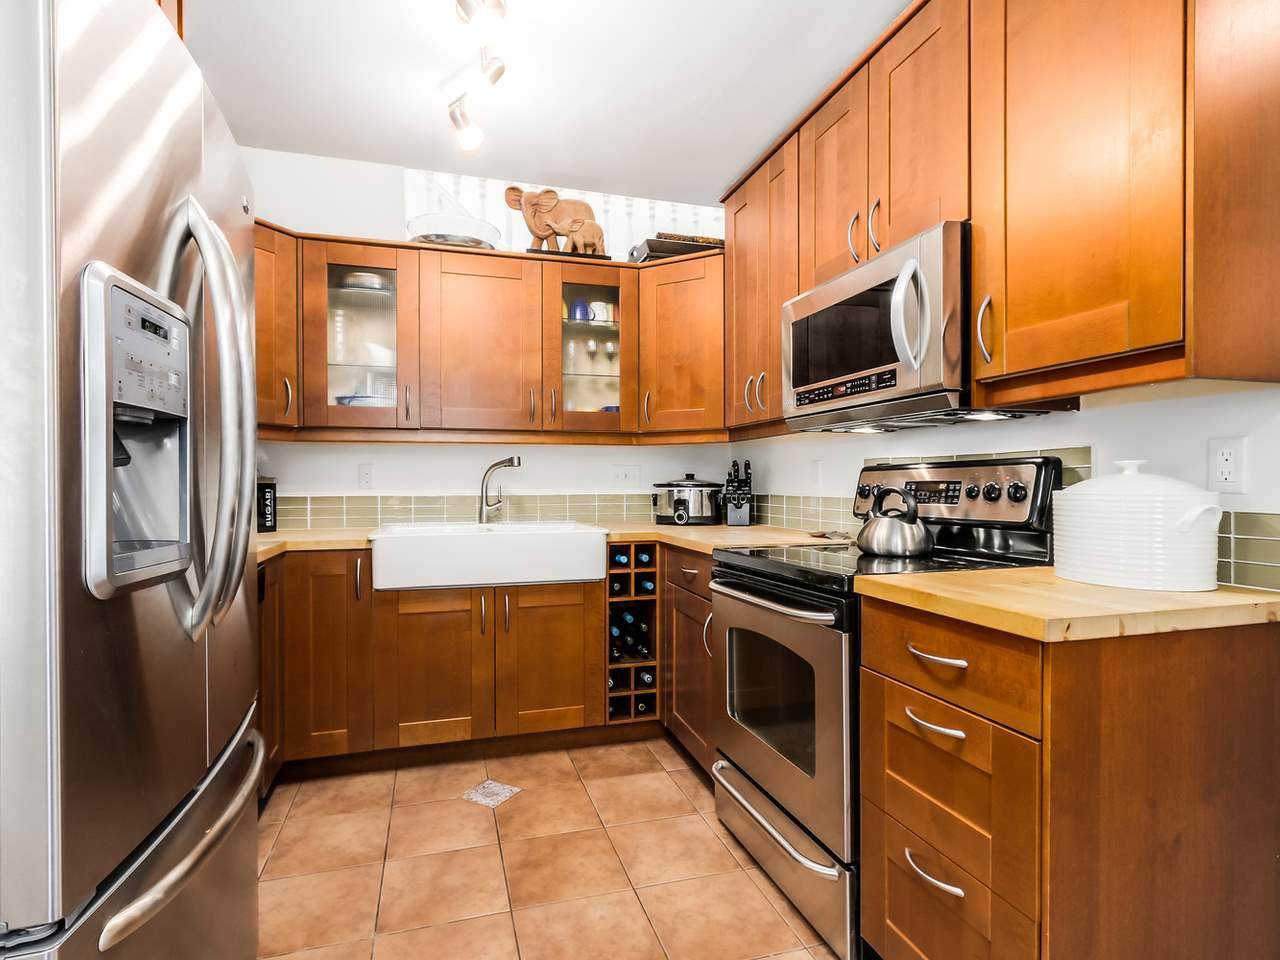 Photo 10: Photos: 2 269 E KEITH ROAD in North Vancouver: Lower Lonsdale House 1/2 Duplex for sale : MLS®# R2025742